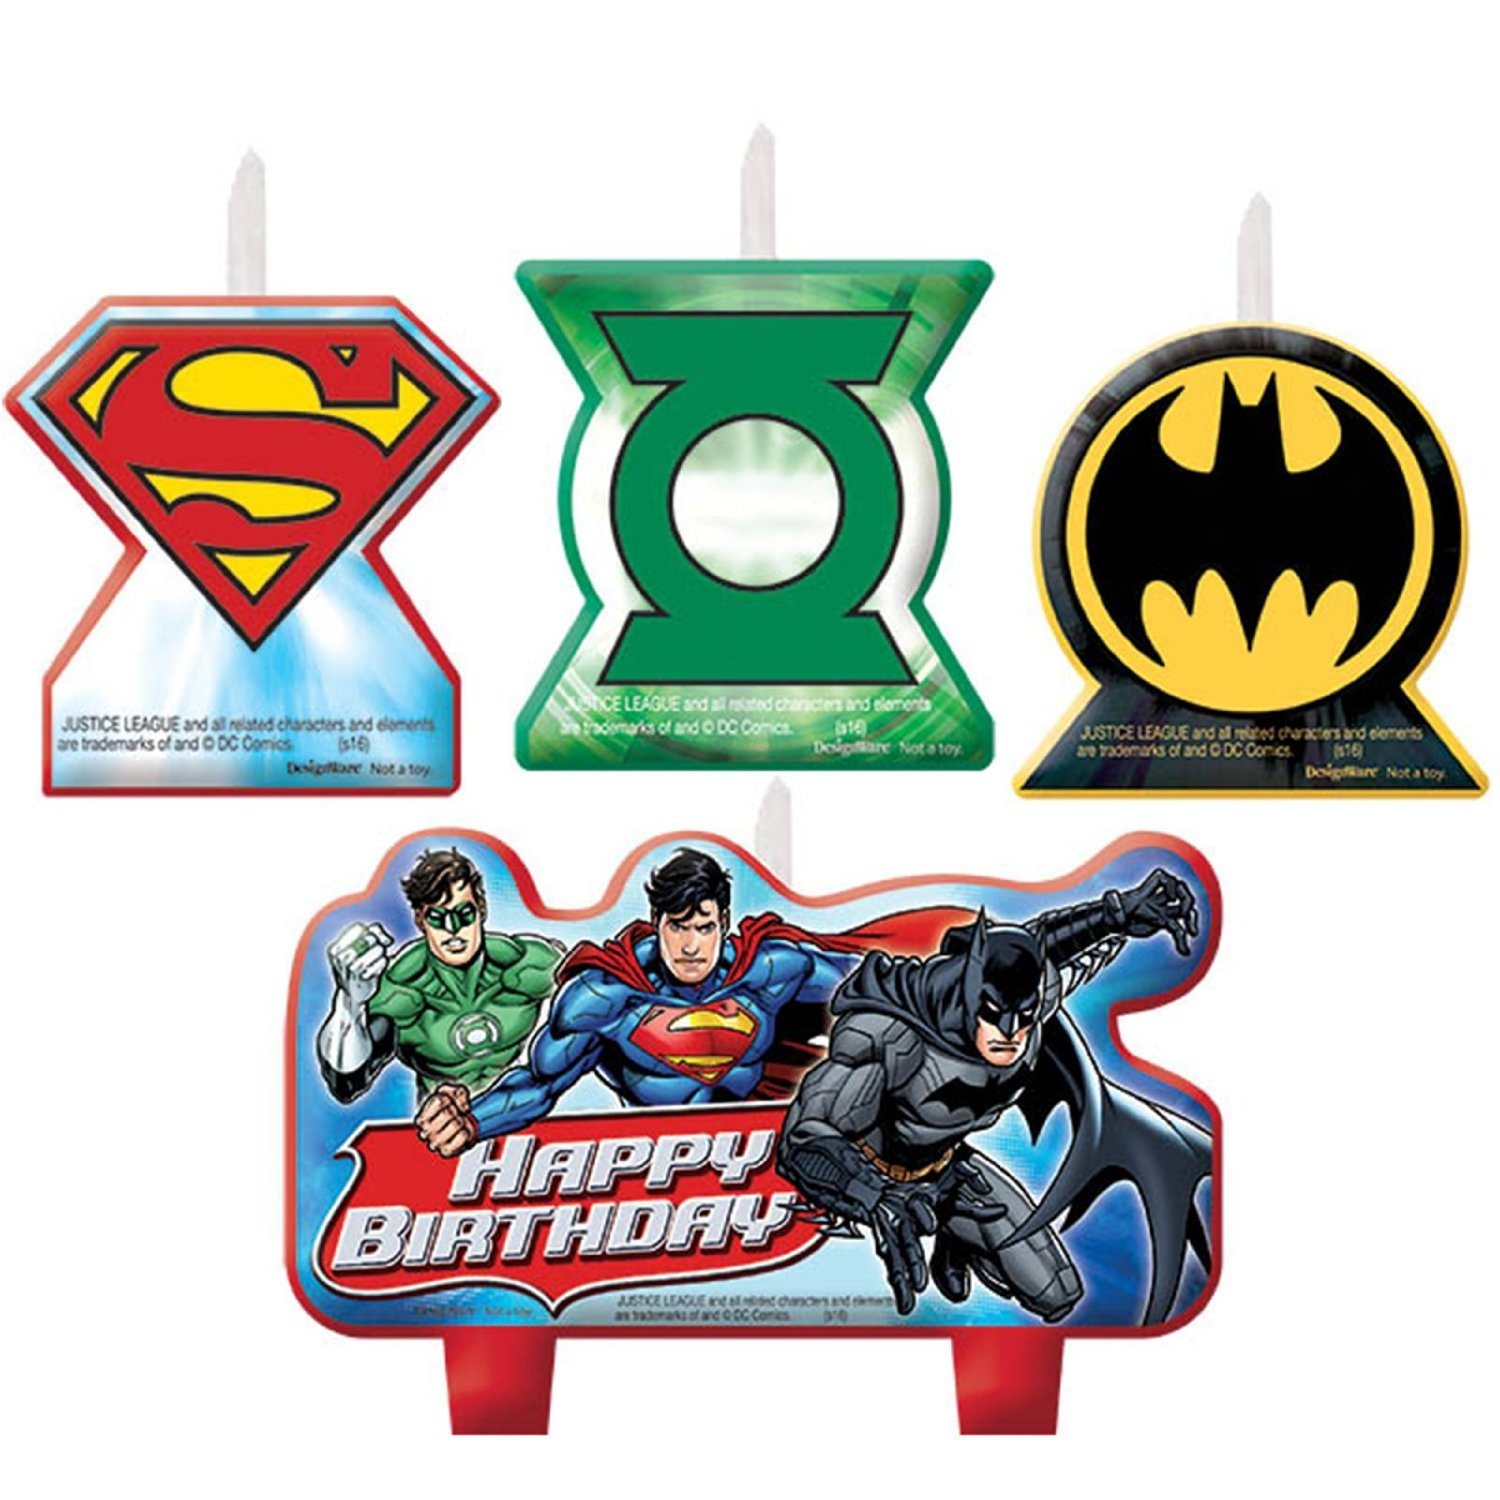 Adventure Filled Justice League Birthday Party Decorative Cake Candle Set, Multi Colored, Wax, Assorted Sizes, 4-Piece